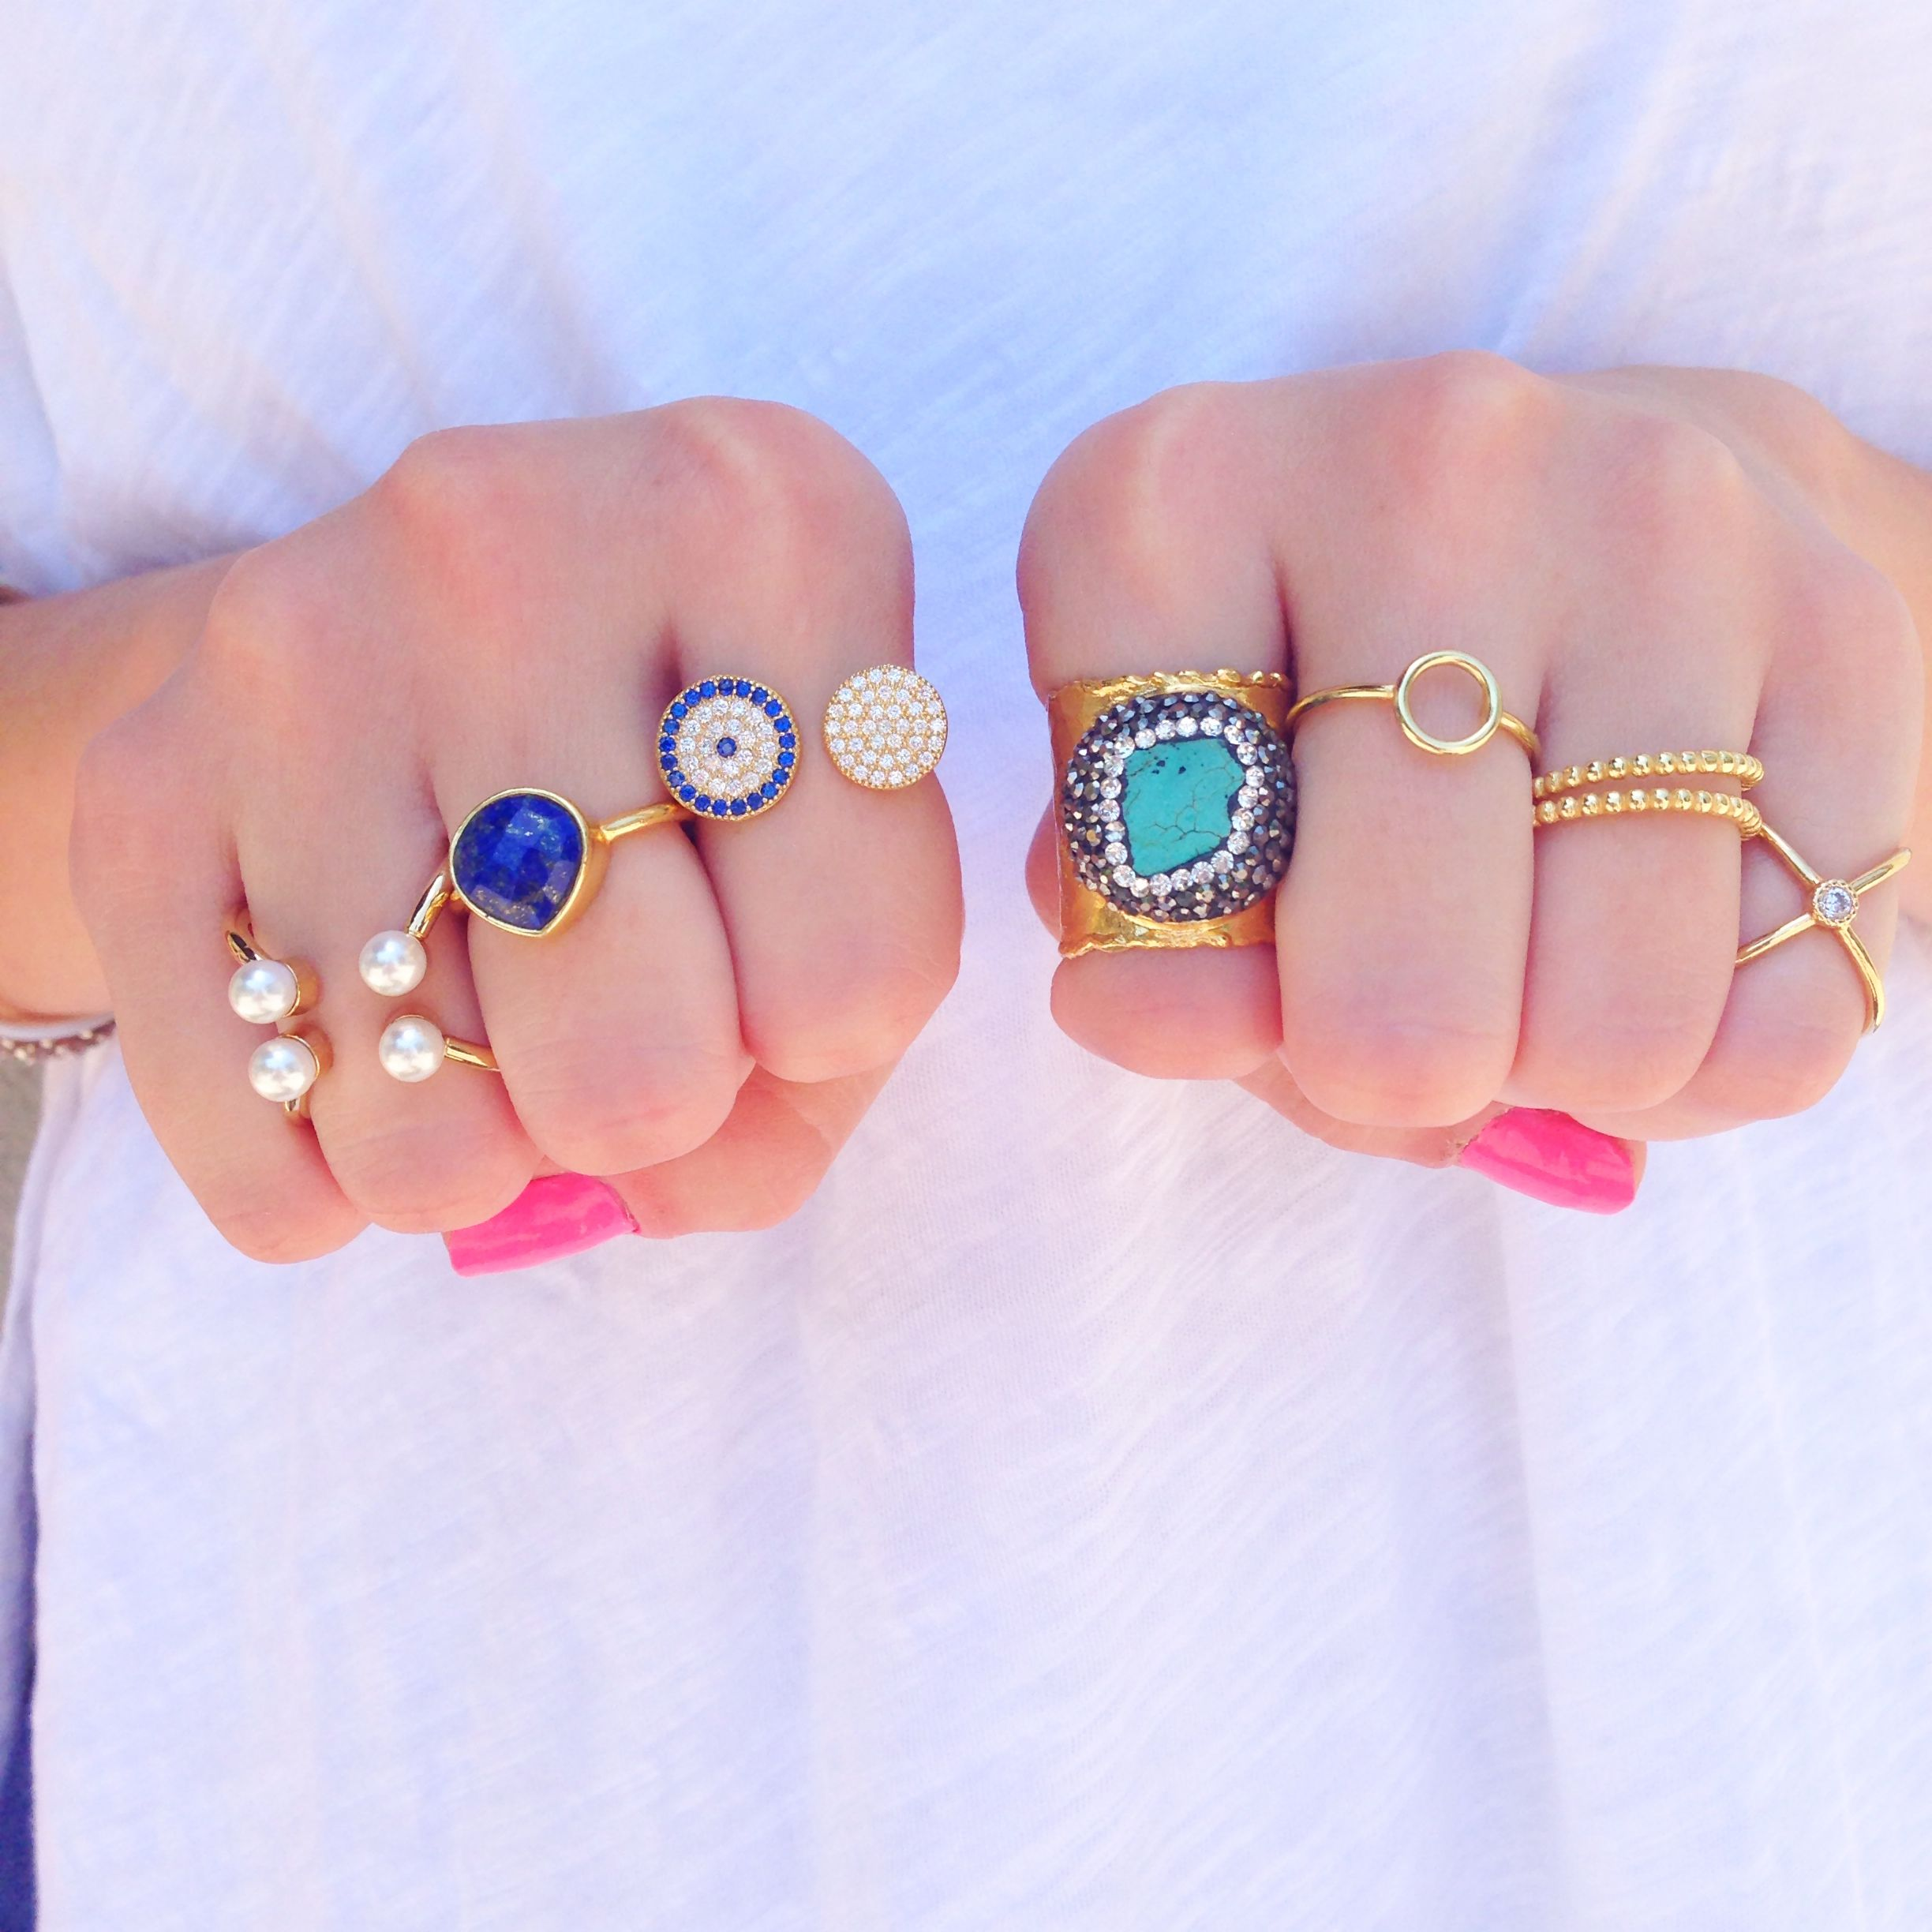 Some serious ring love.